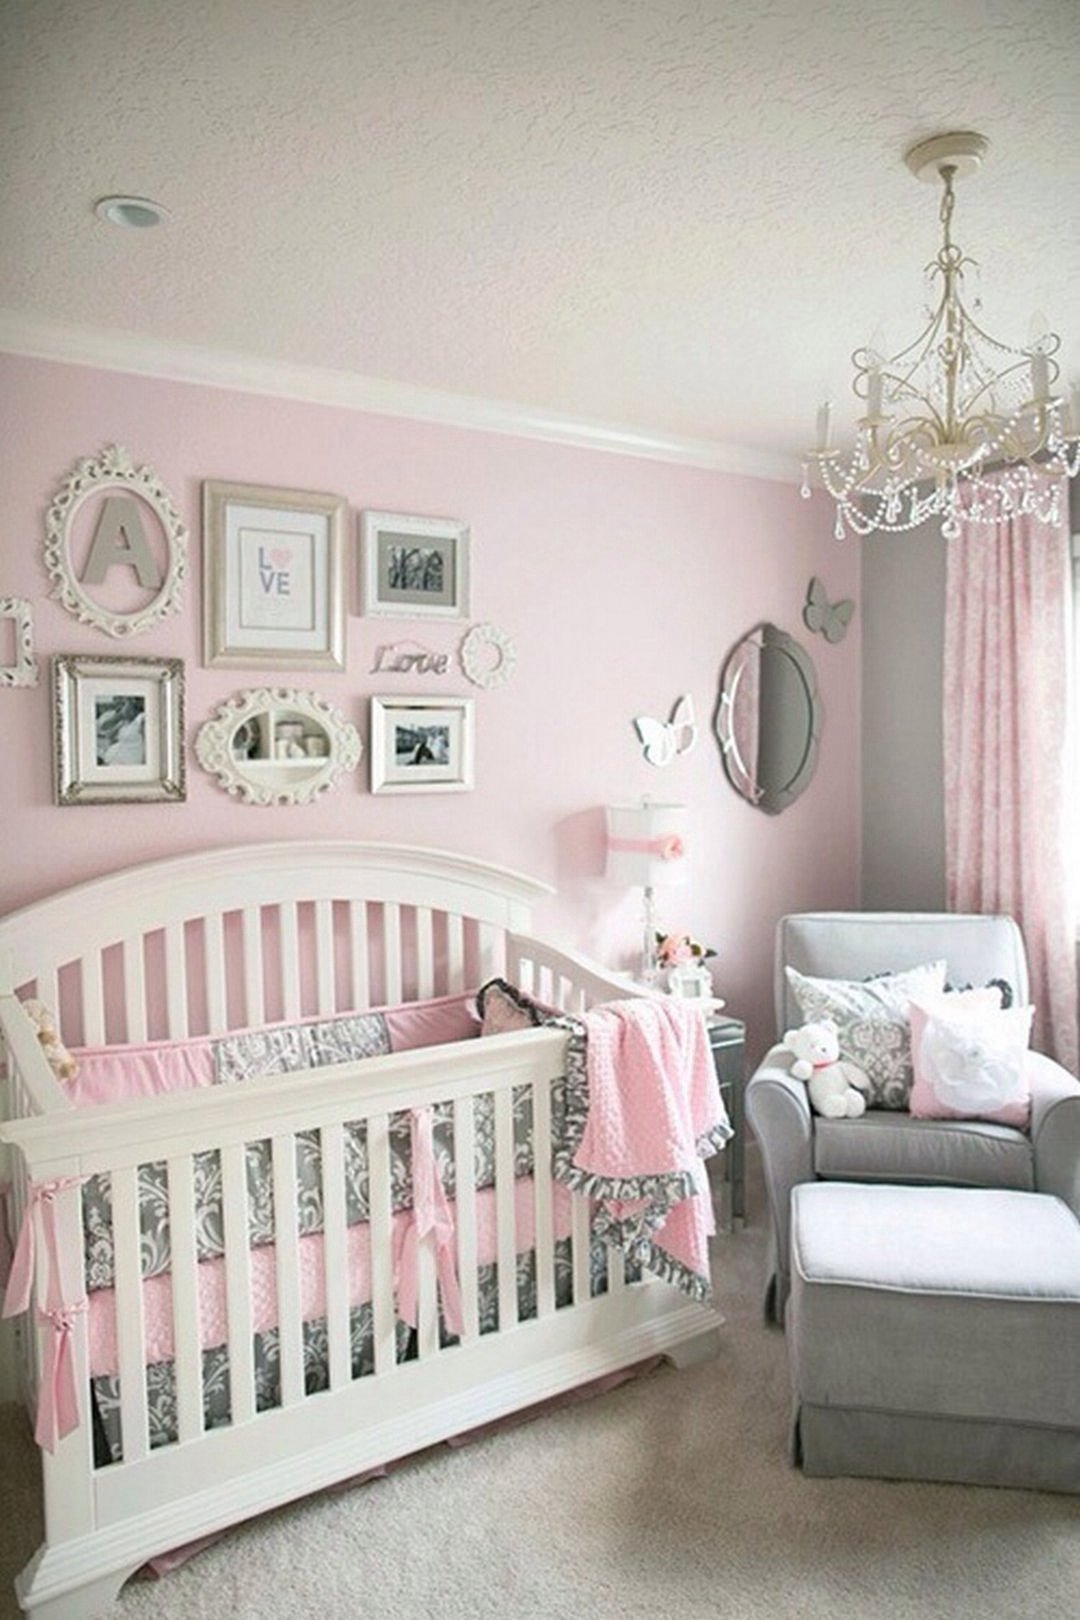 10 Most Recommended Ideas For Baby Girl Room 6 actionable tips on baby girl nursery nursery babies and girls 9